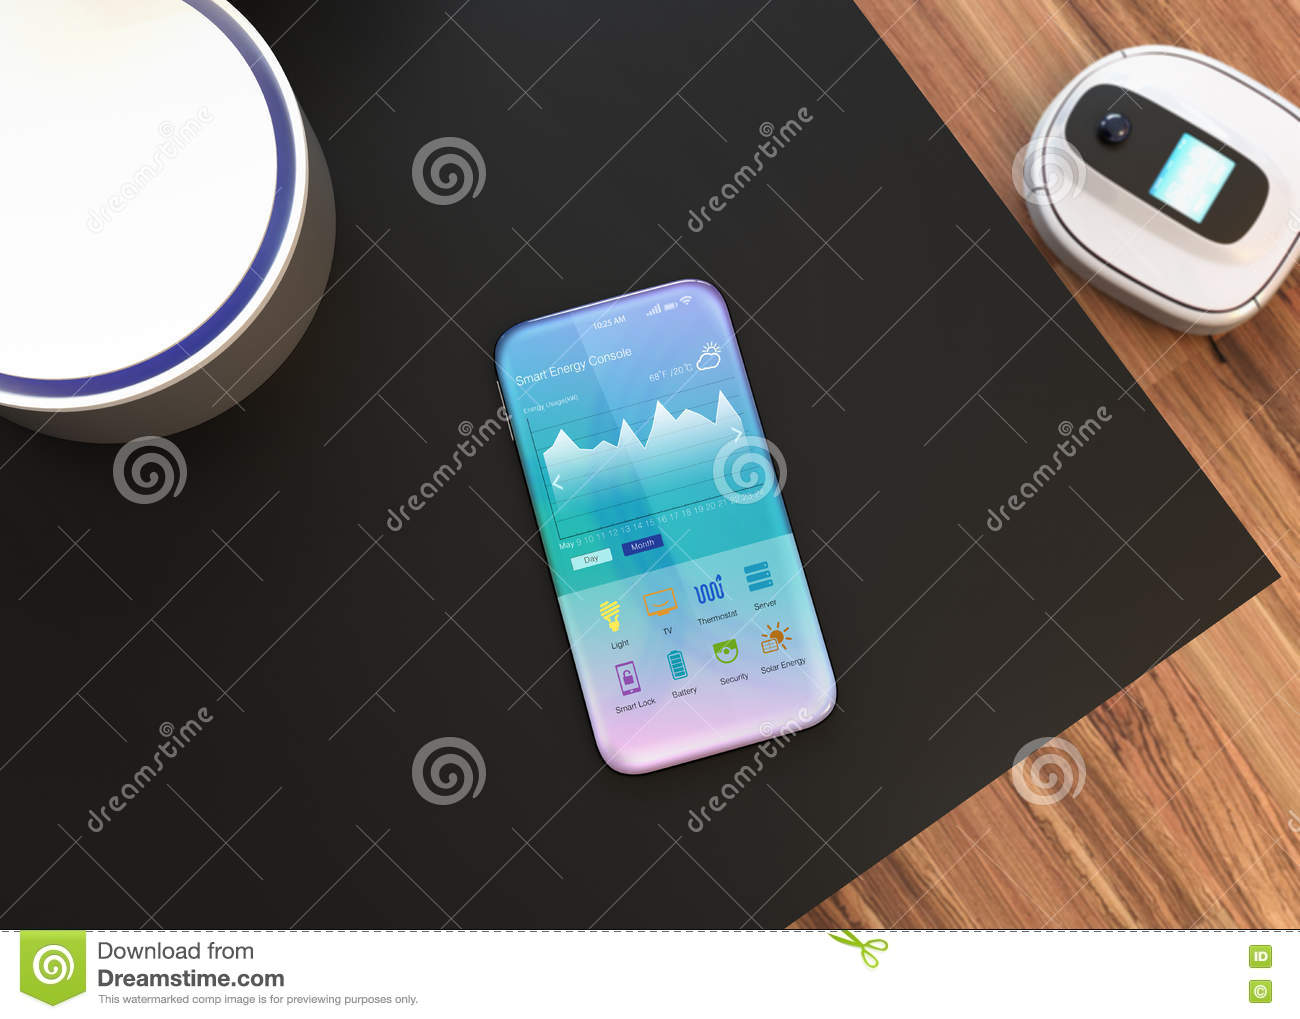 Smartphone Home Control home automation controlsmart phone stock illustration - image